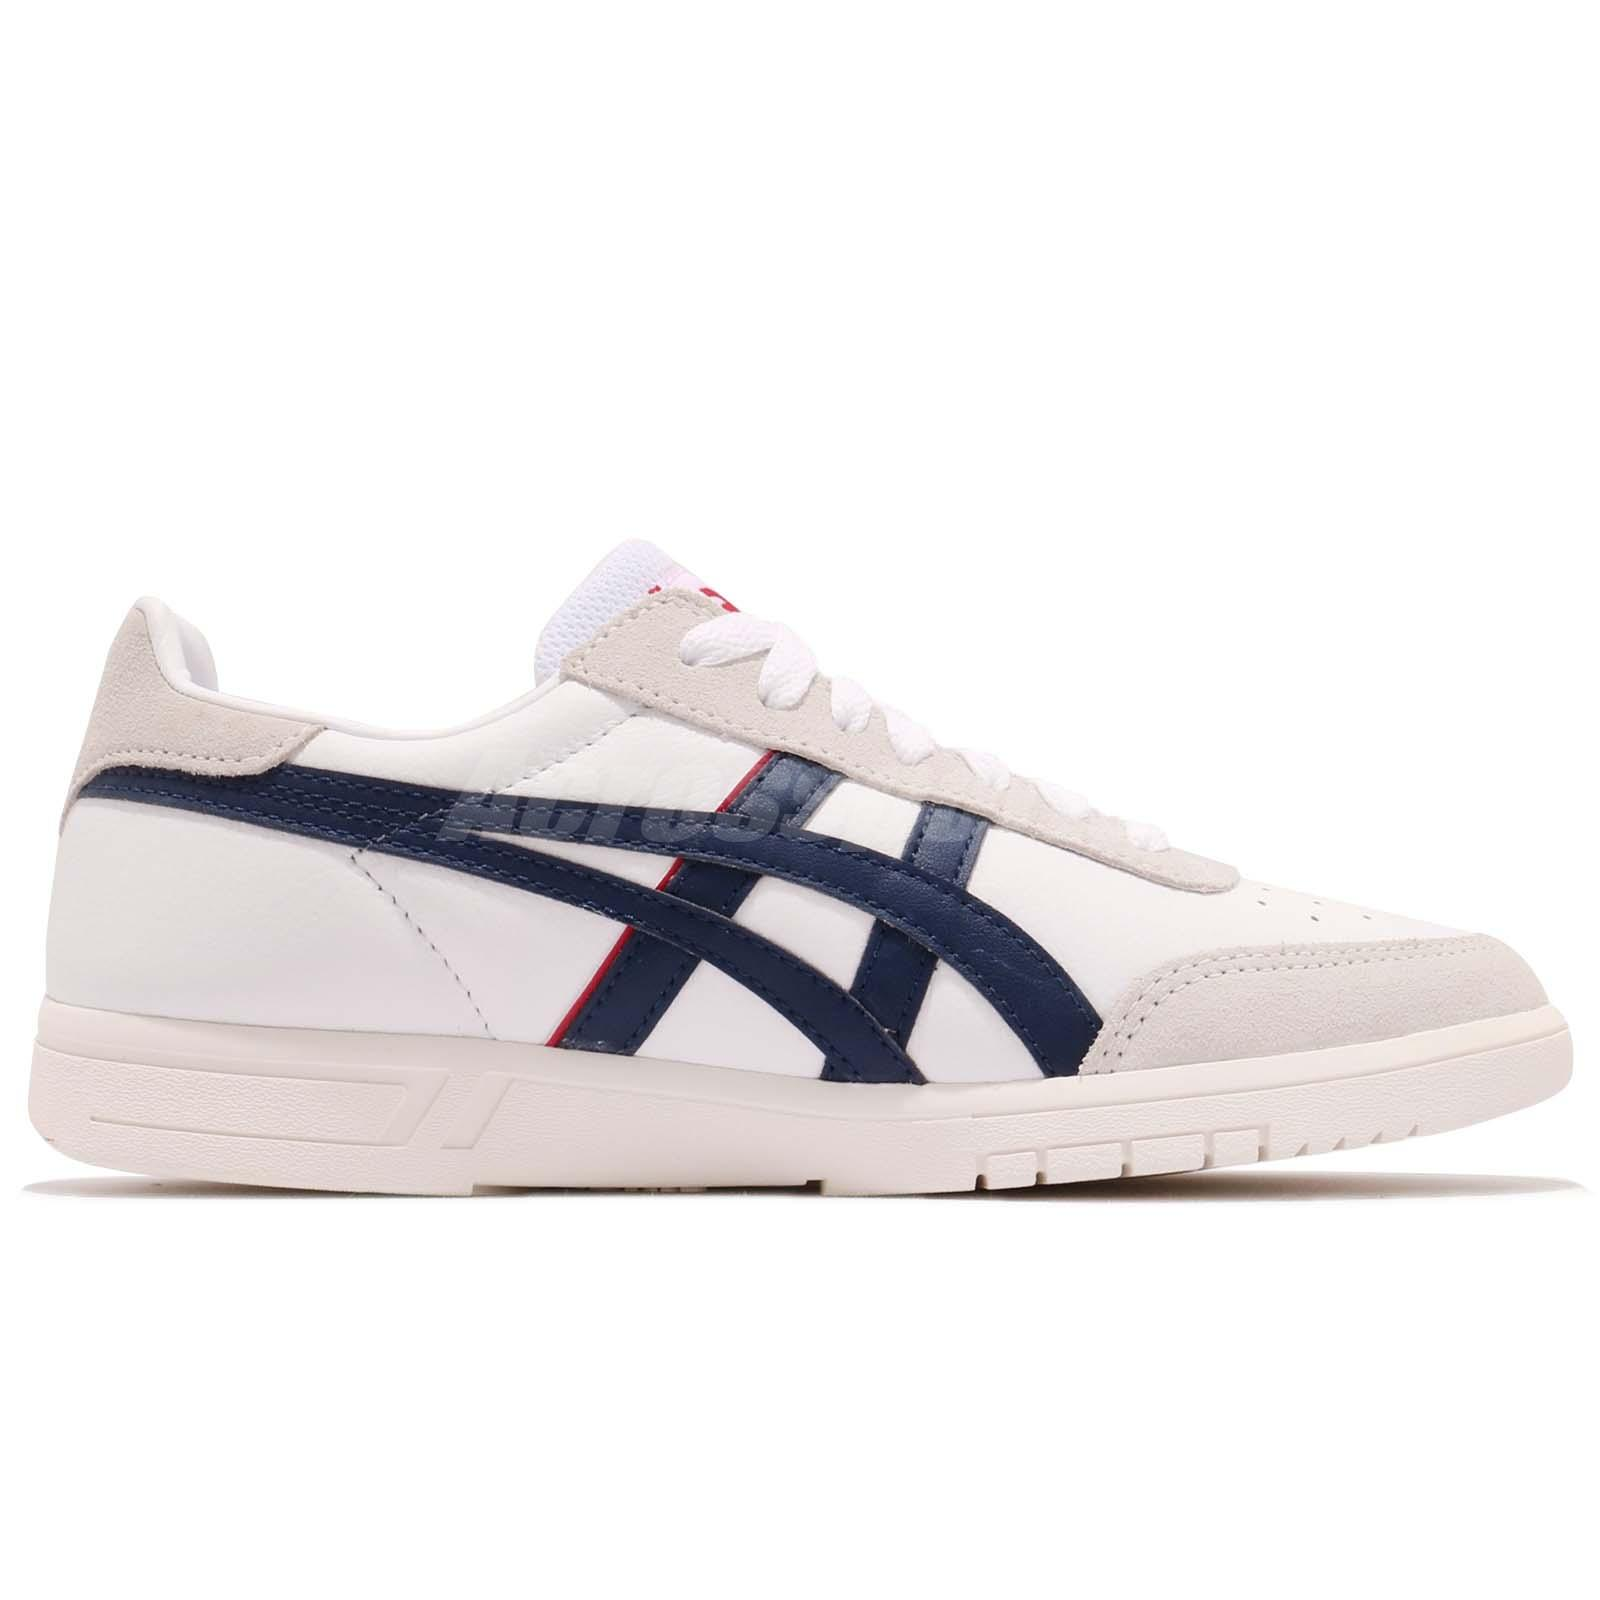 Tiger Peacoat White Gel Trs Sneakers Men Shoes Asics Casual Vickka X4Uvqvg